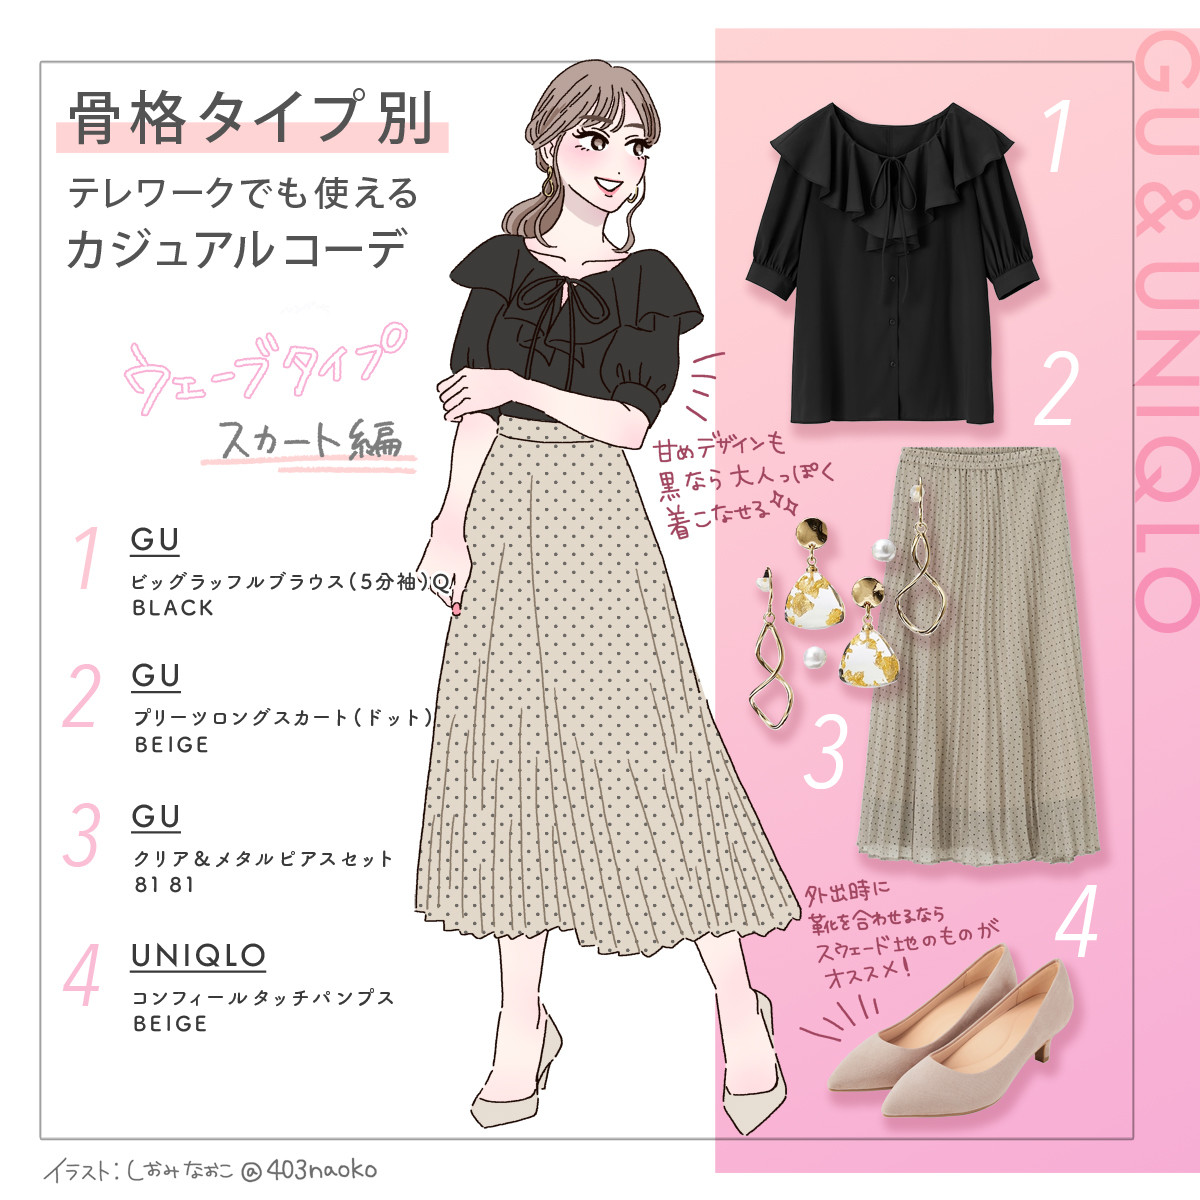 Photo of At the 9th GU & UNIQLO[骨格ウェーブ]A skirt outfit that can be used for teleworking